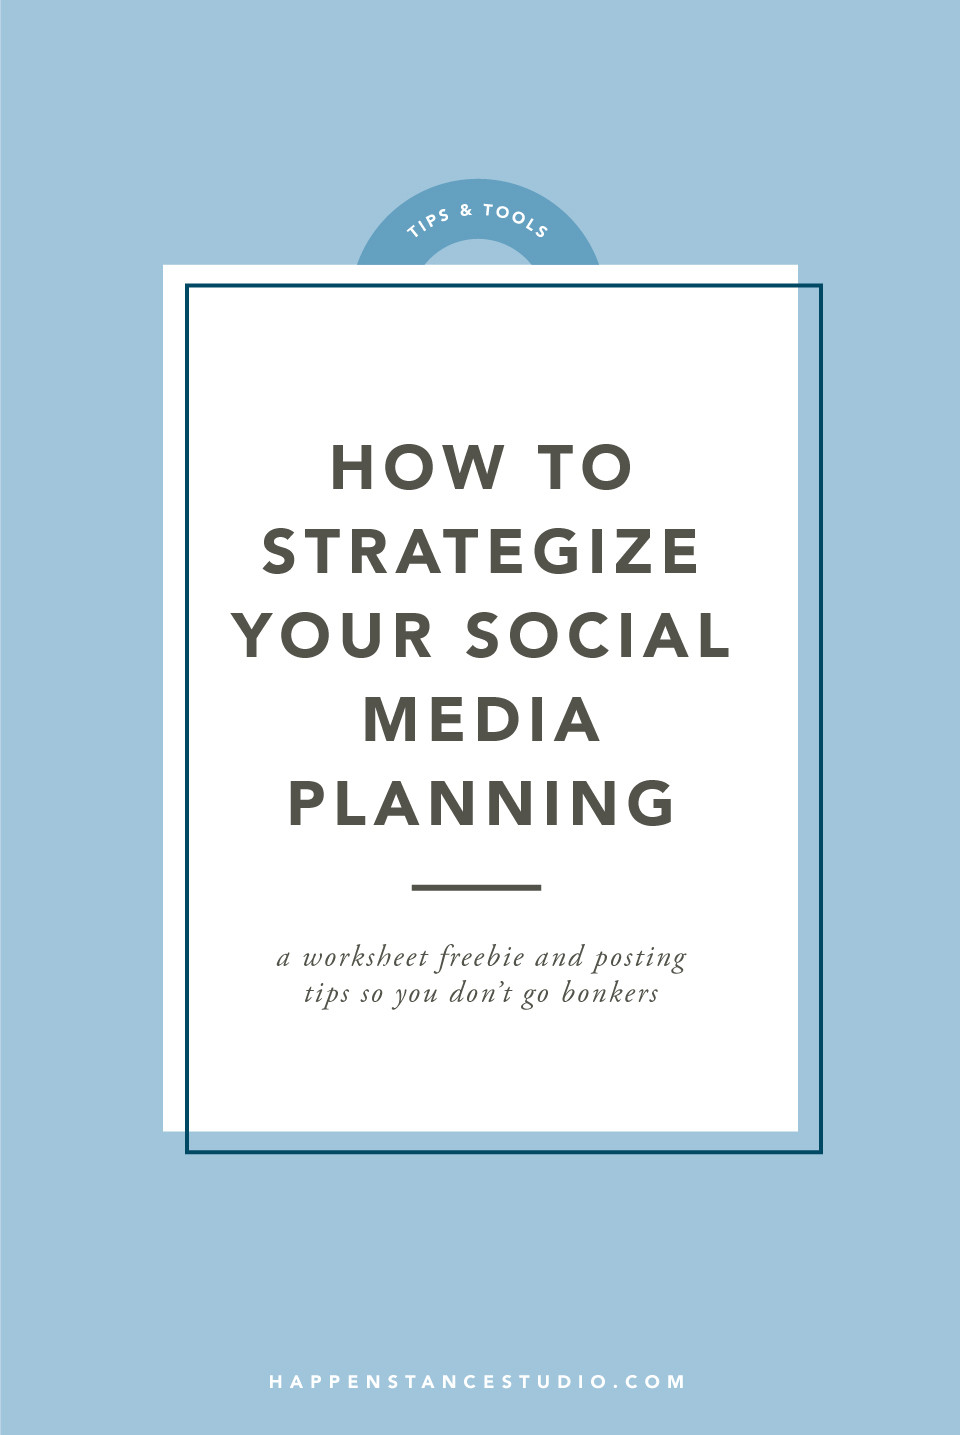 How to Strategize Your Social Media Planning